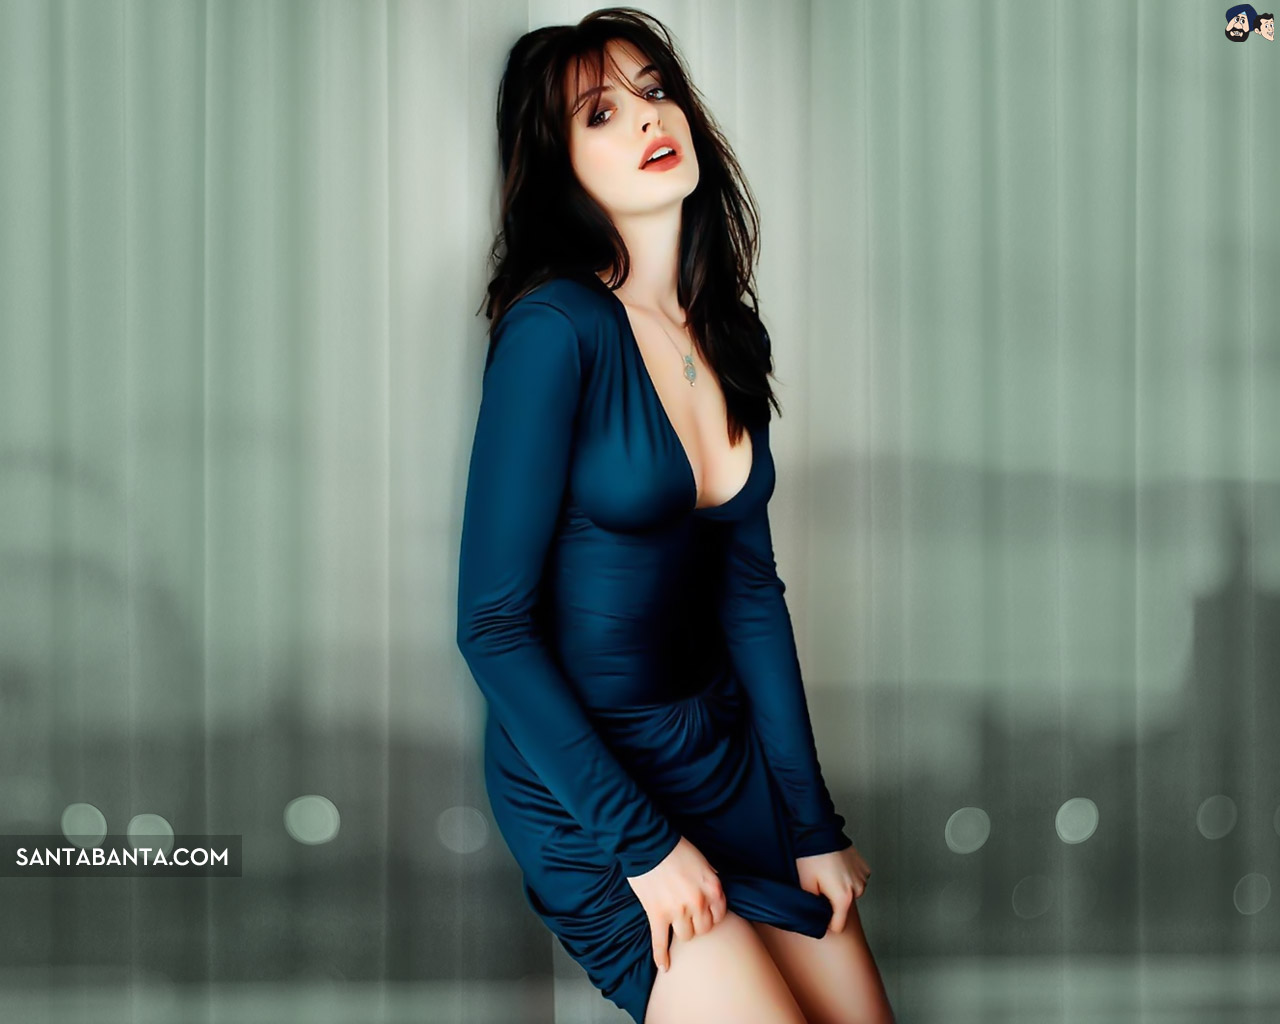 Anne Hathaway Hd Wallpapers Most Beautiful Places In The